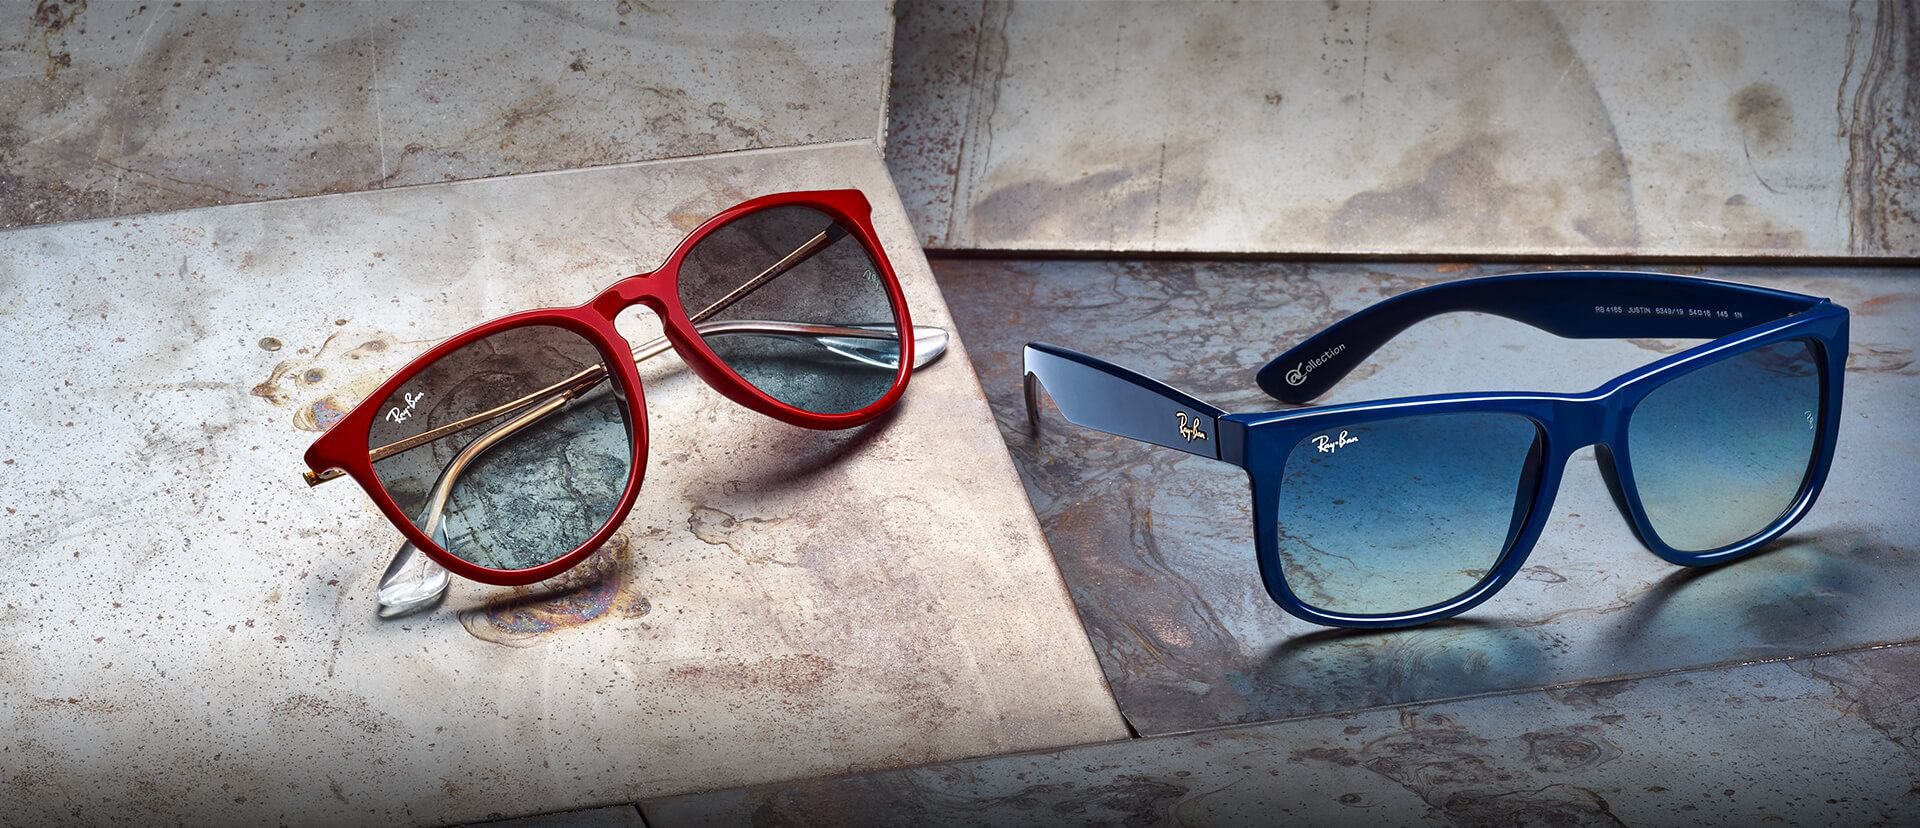 Ray-Ban atCollection